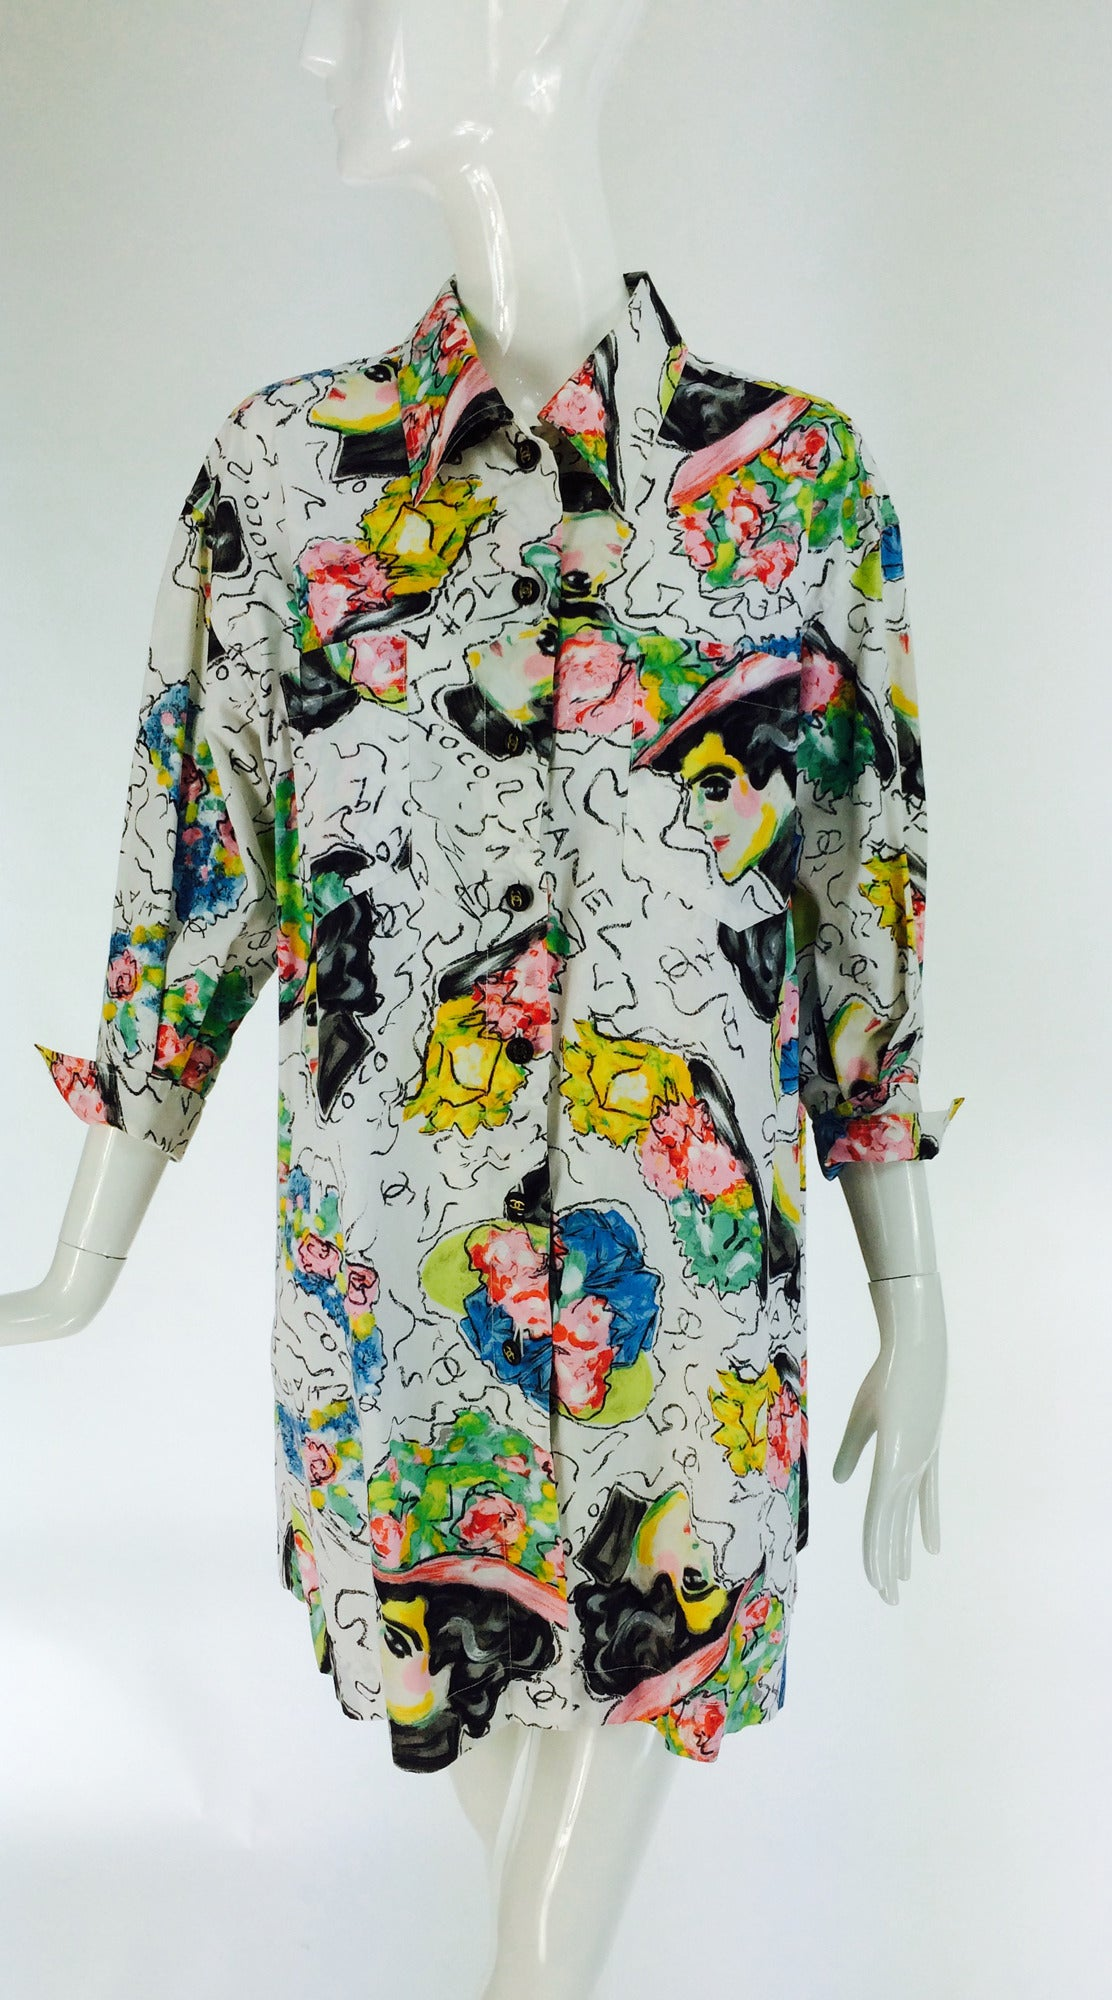 Colourful painterly printed cotton big shirt/tunic with illustrations of Coco Chanel...Profile of Chanel circa early 1900s wearing a hat appear throughout...Button front shirt has a collar, yoke back, dropped shoulders, 3/4 length sleeves with